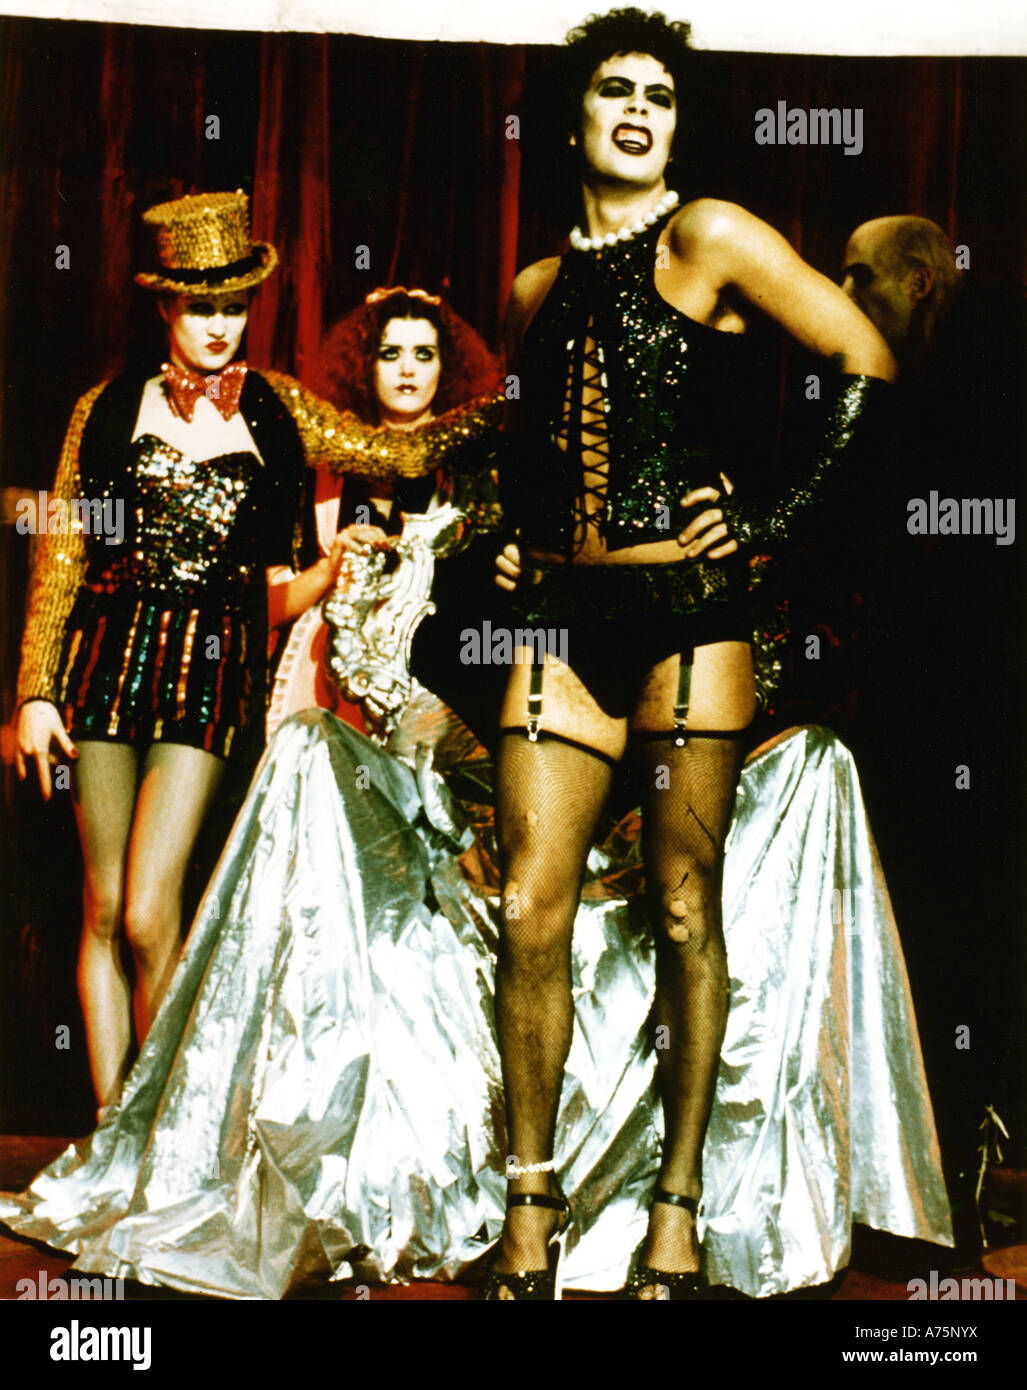 ROCKY HORROR PICTURE SHOW 1975 TCF Film mit Tim Curry Stockbild